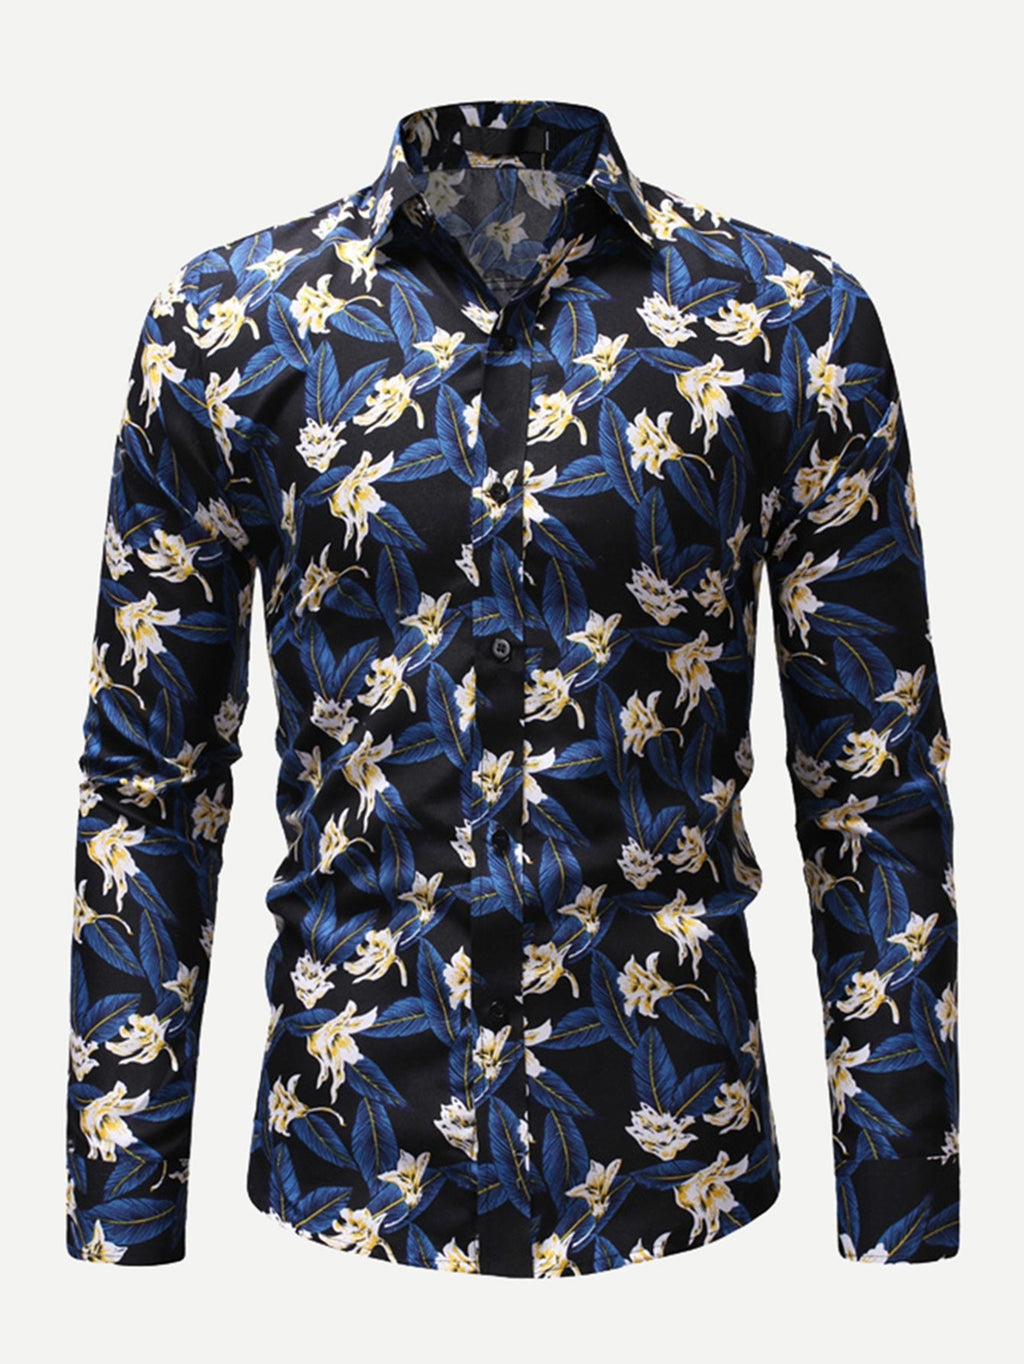 Party Shirts For Men - Floral Print Shirt